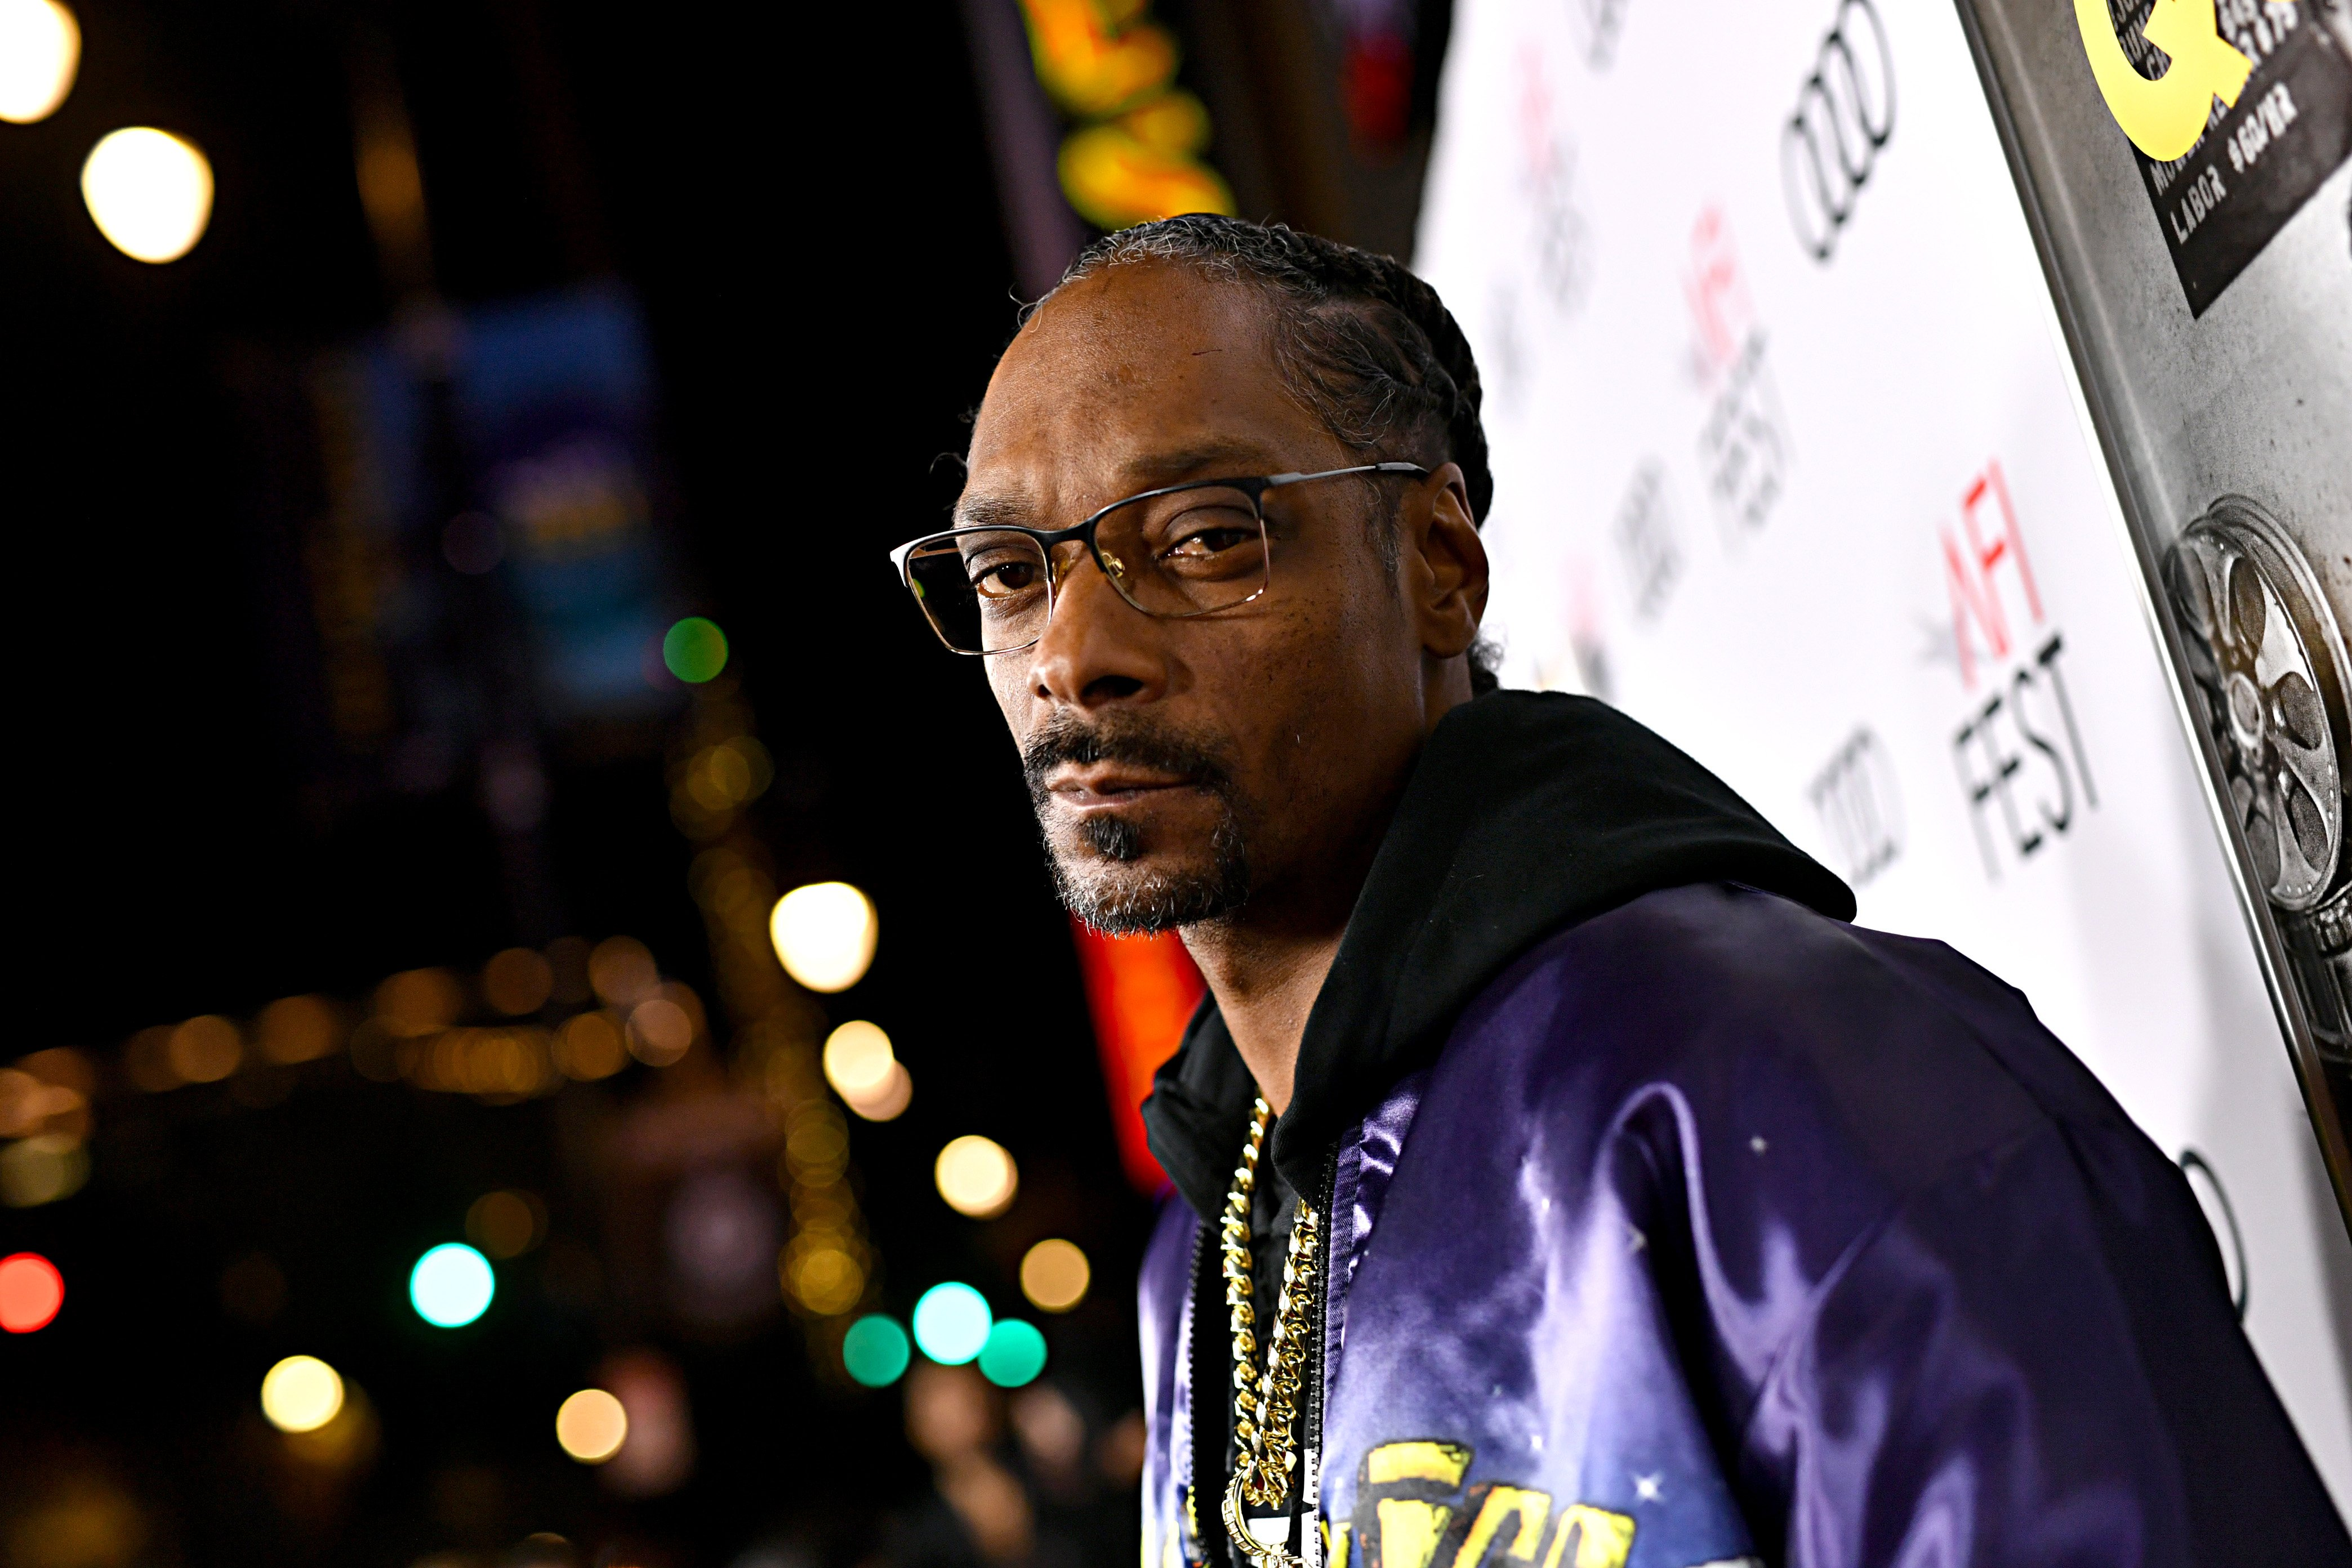 """Snoop Dogg pictured at the """"Queen & Slim"""" Premiere at AFI FEST 2019 on November 14, 2019 in Hollywood, California. 